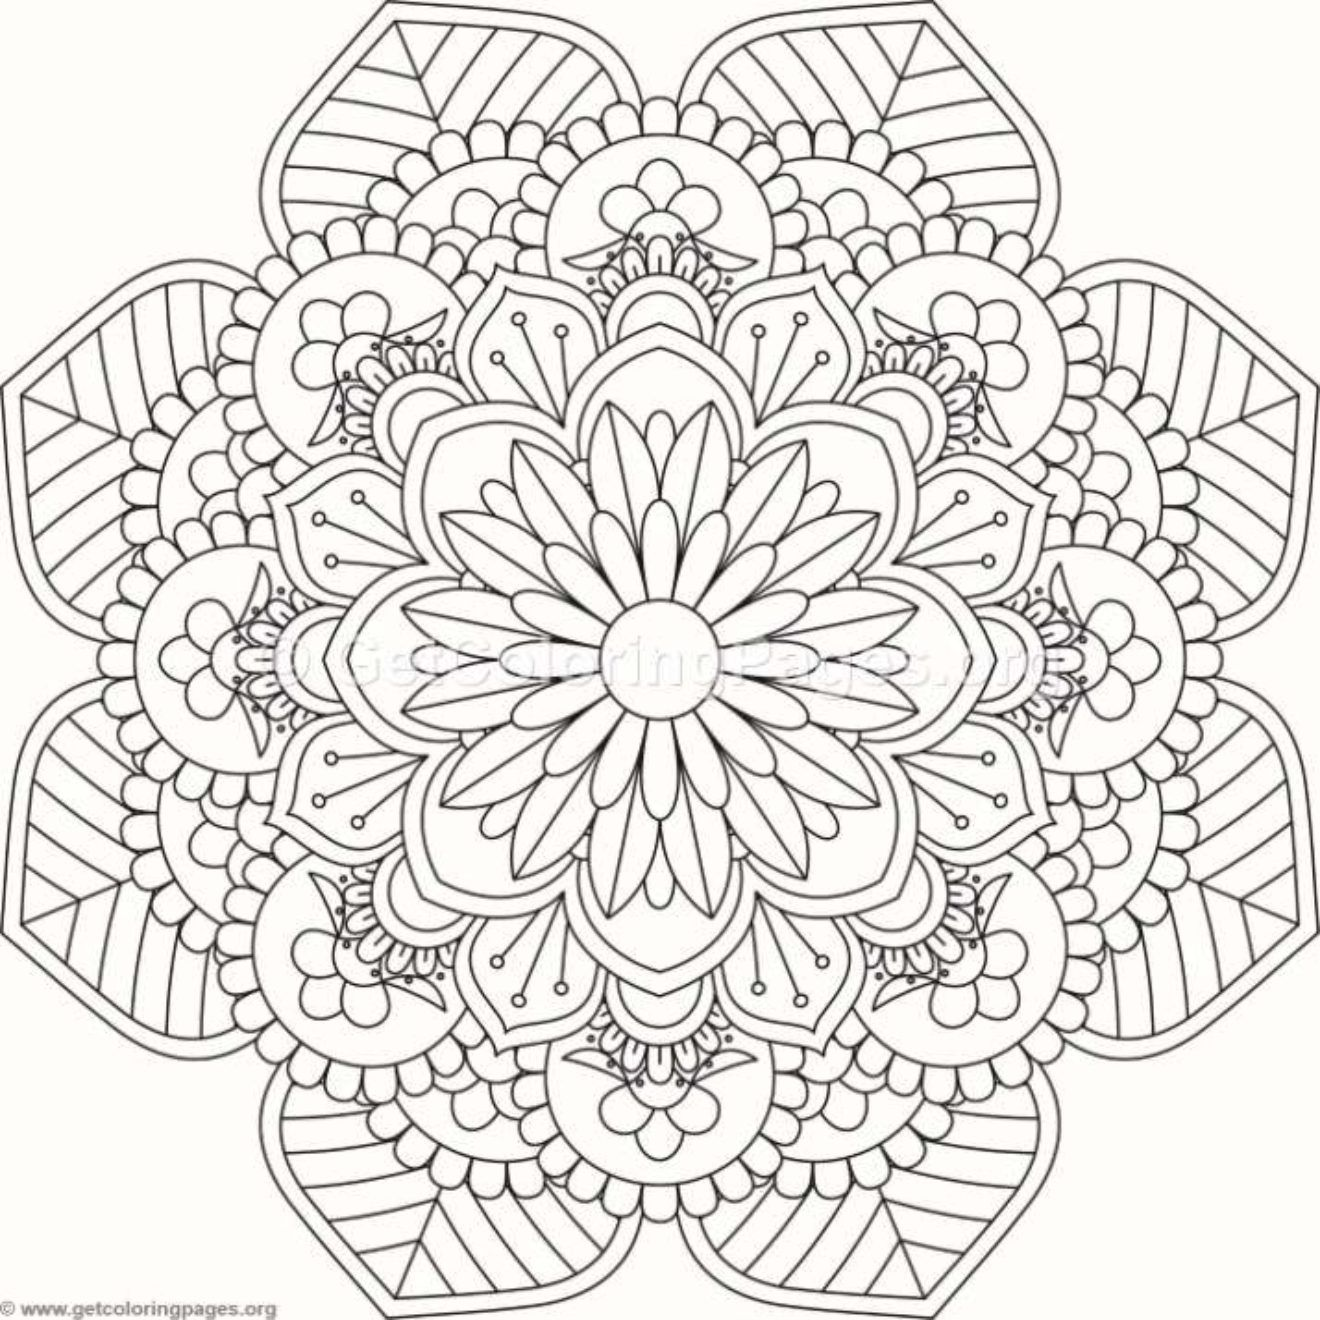 Flower Mandala Coloring Pages #505 – GetColoringPages.org ...